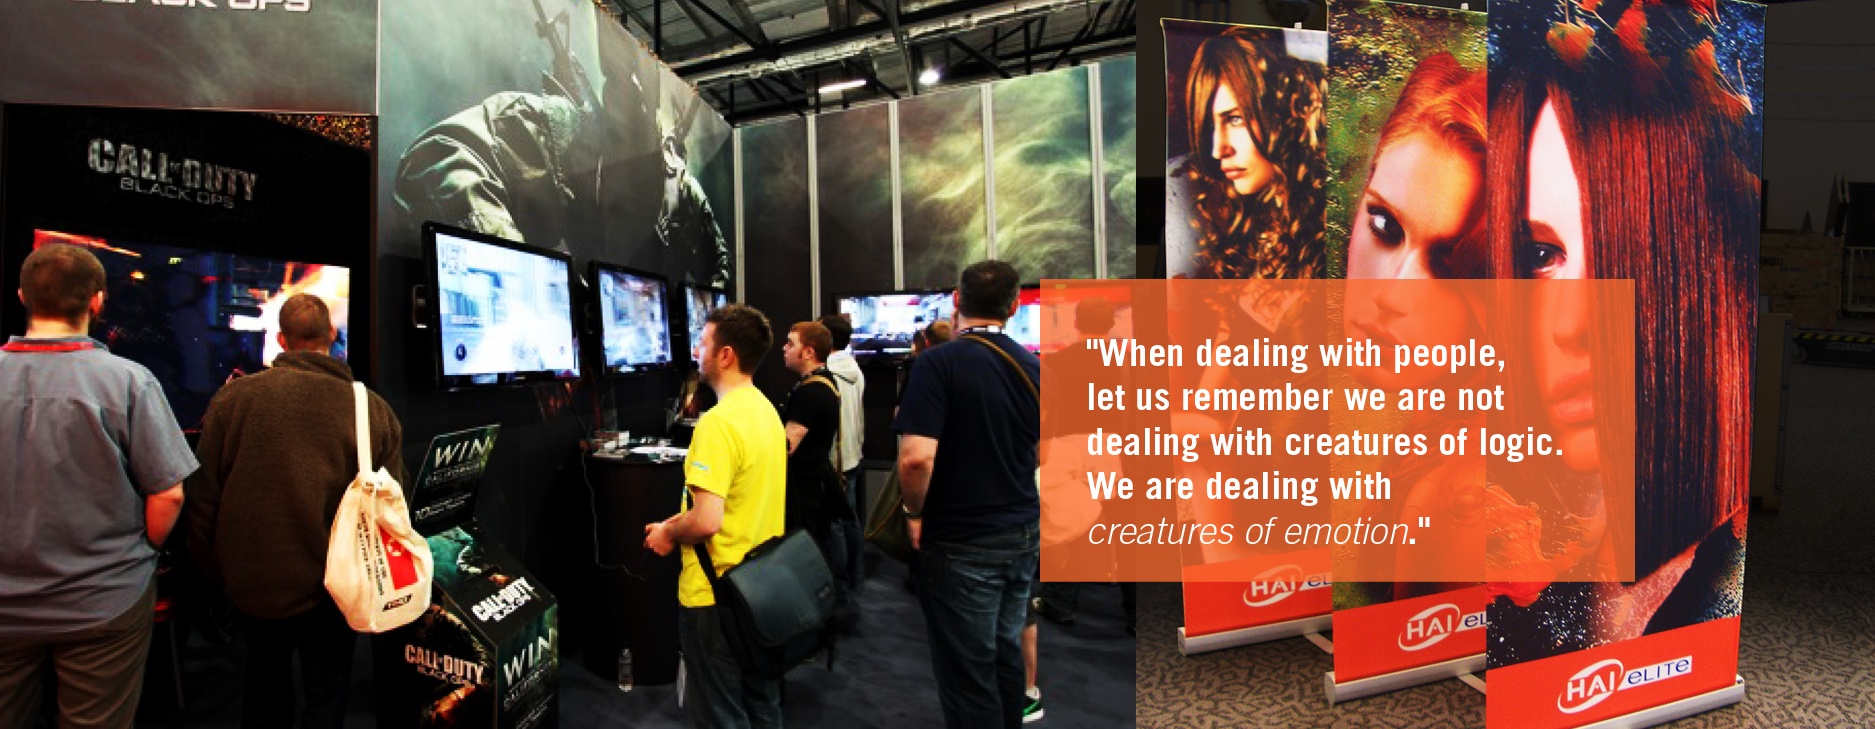 booth design ideas for emotional interaction